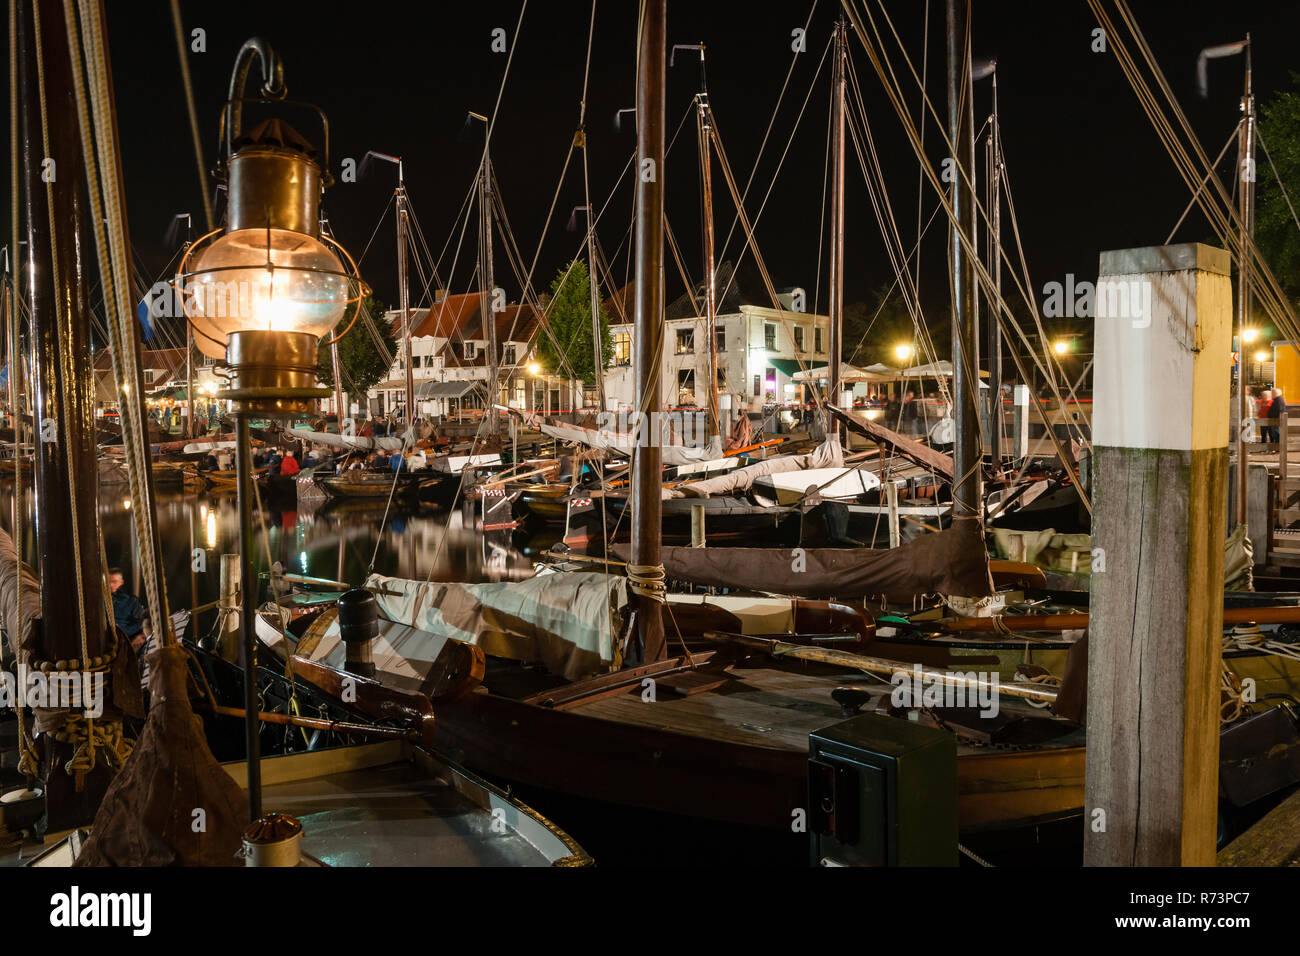 Harbor with wooden flat bottom ships and fishing boats tied up at the quay. - Stock Image